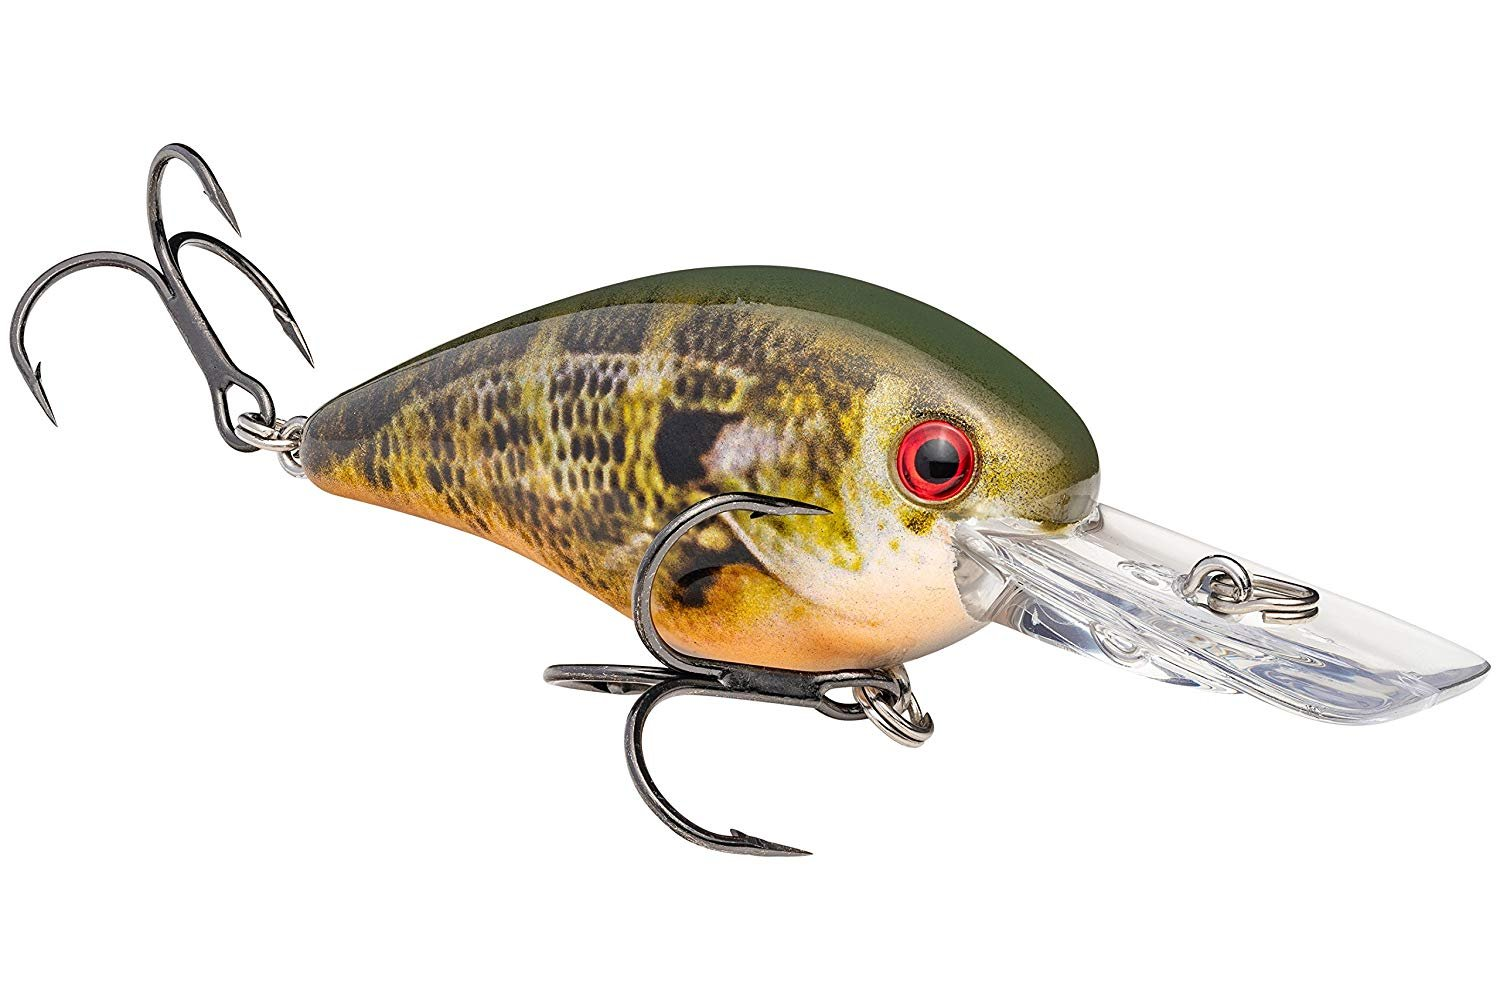 2019春大特価セール! Strike King KVD Strike Deep Diver Squarebill Crankbait 1.5D B07DXDG74J Orange Diver Bream 1.5D, ヒラカグン:6556cf03 --- hotel.officeporto.com